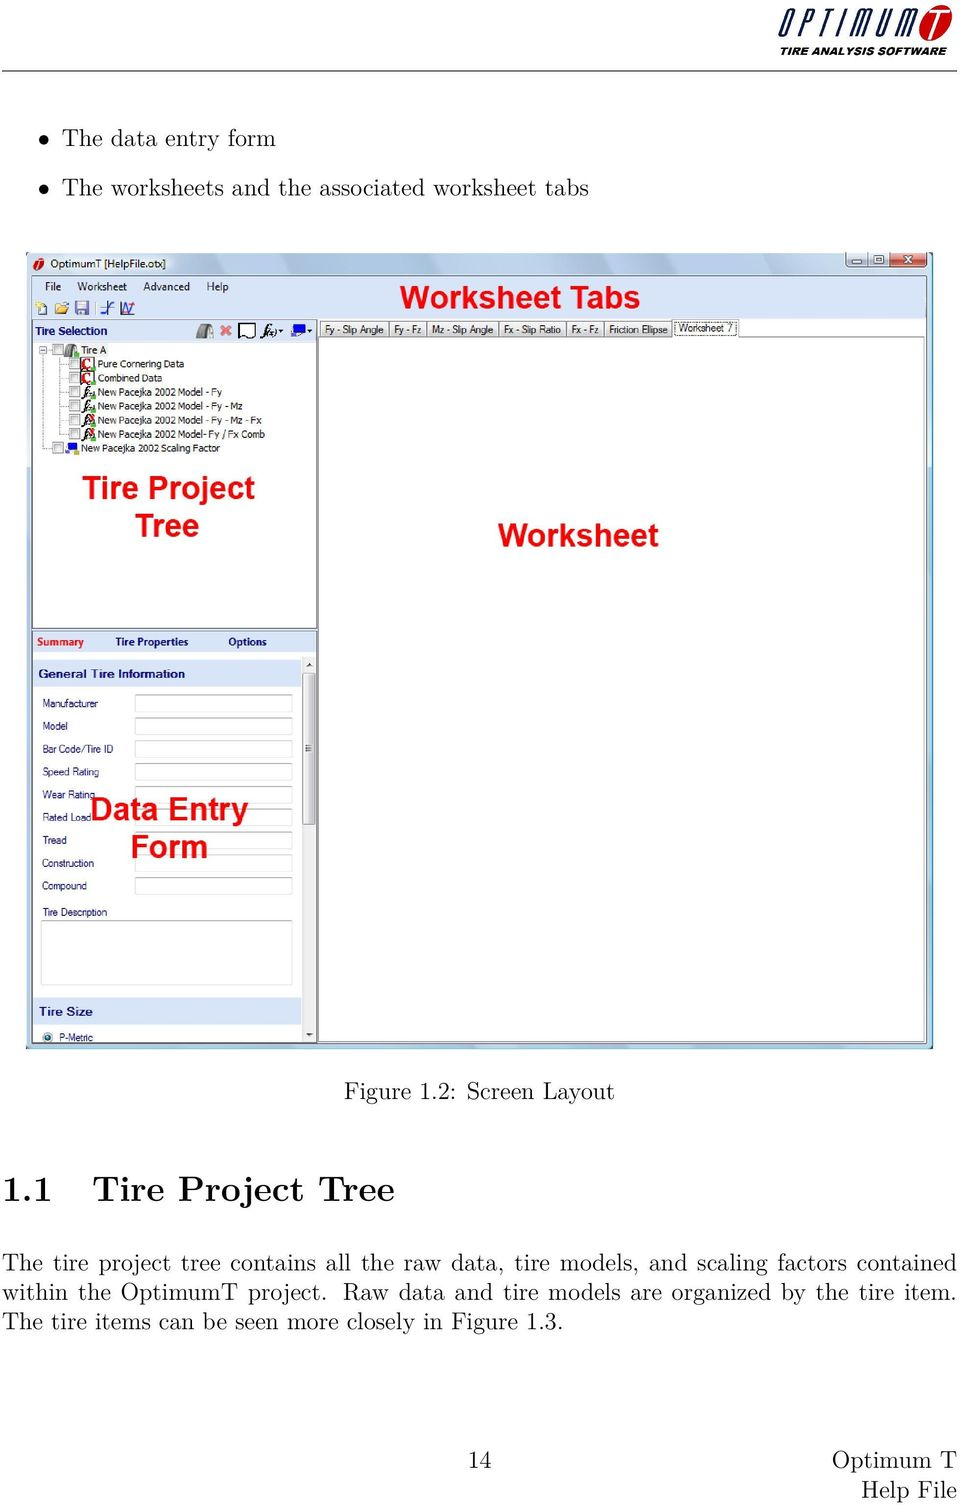 1 Tire Project Tree The tire project tree contains all the raw data, tire models, and